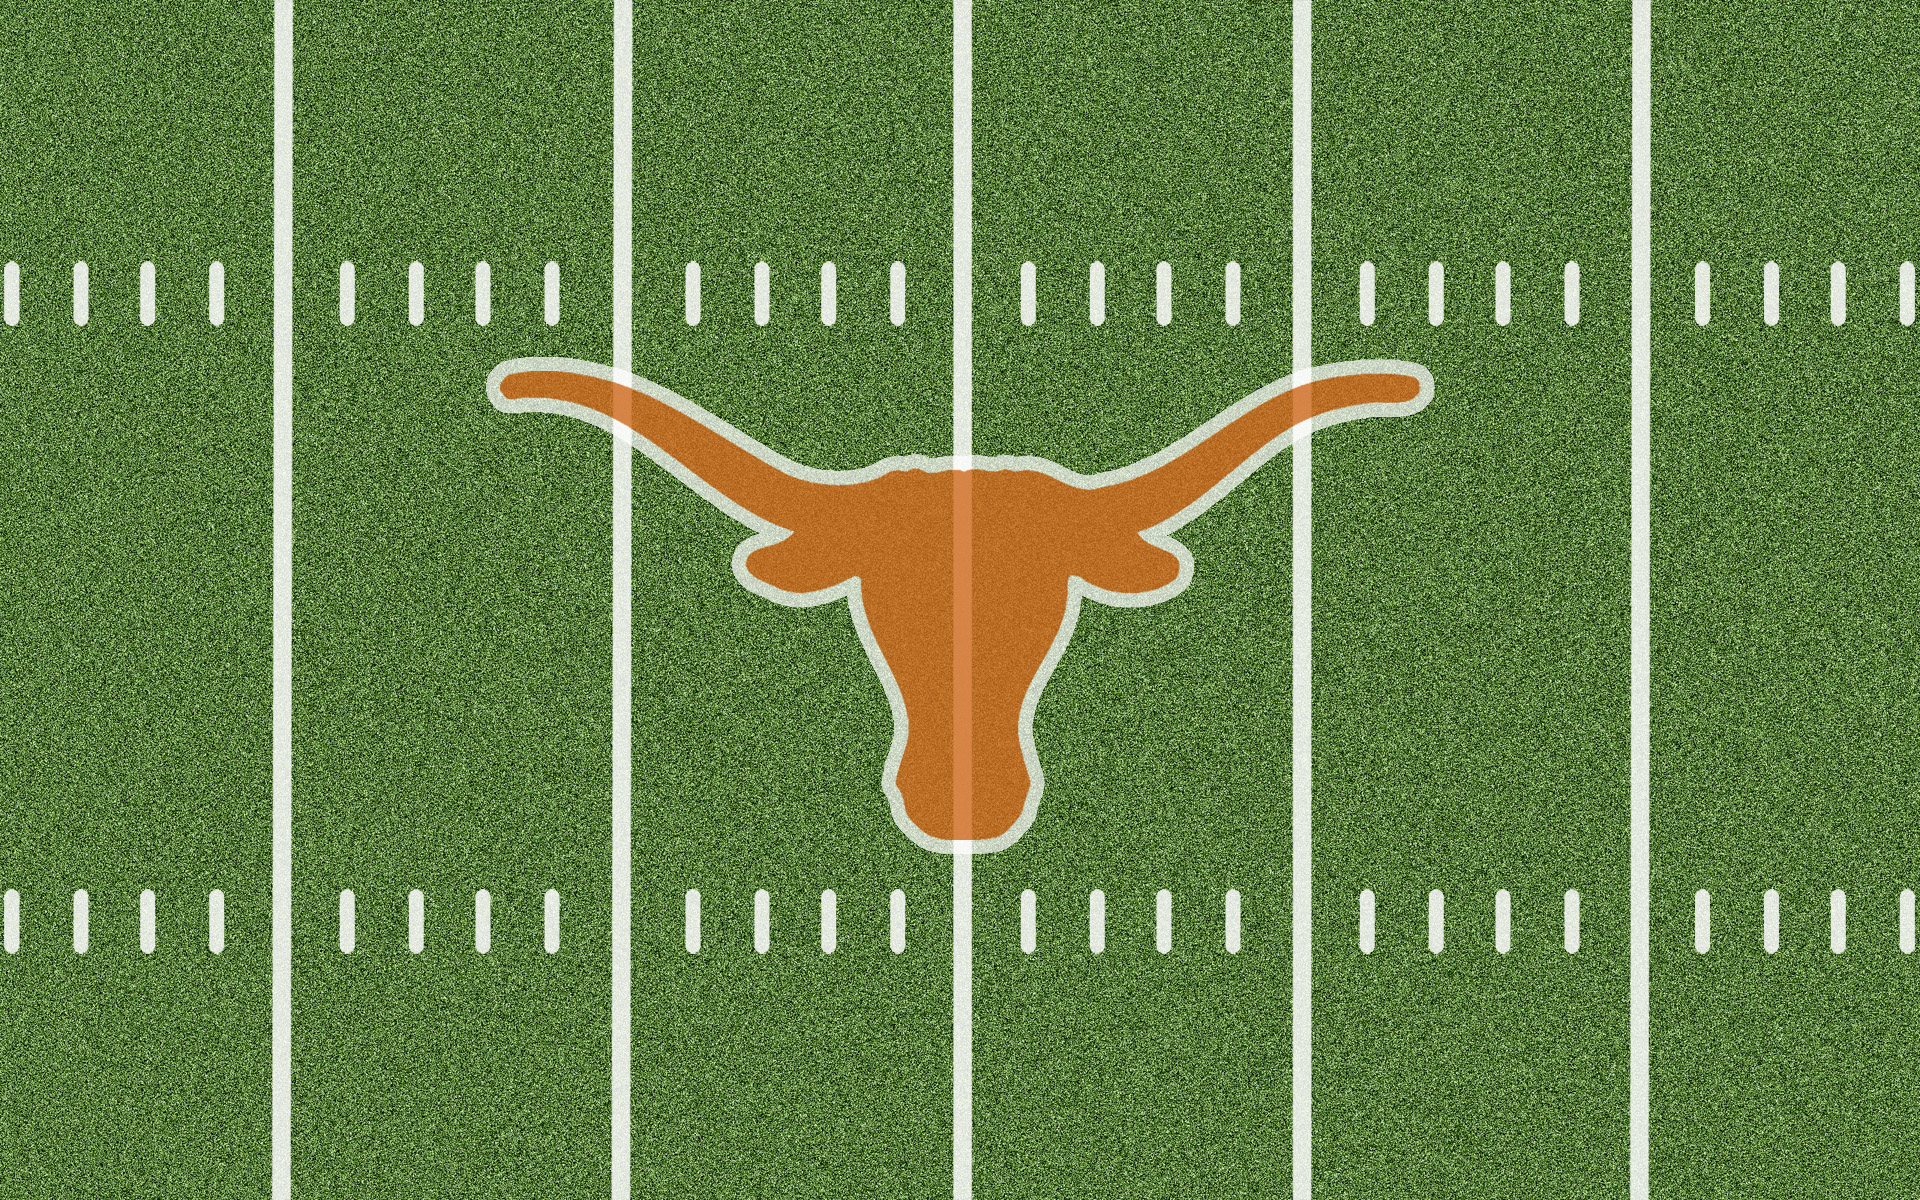 Texas Longhorns Iphone Wallpaper Wallpapers texas longhorns image and 1920x1200